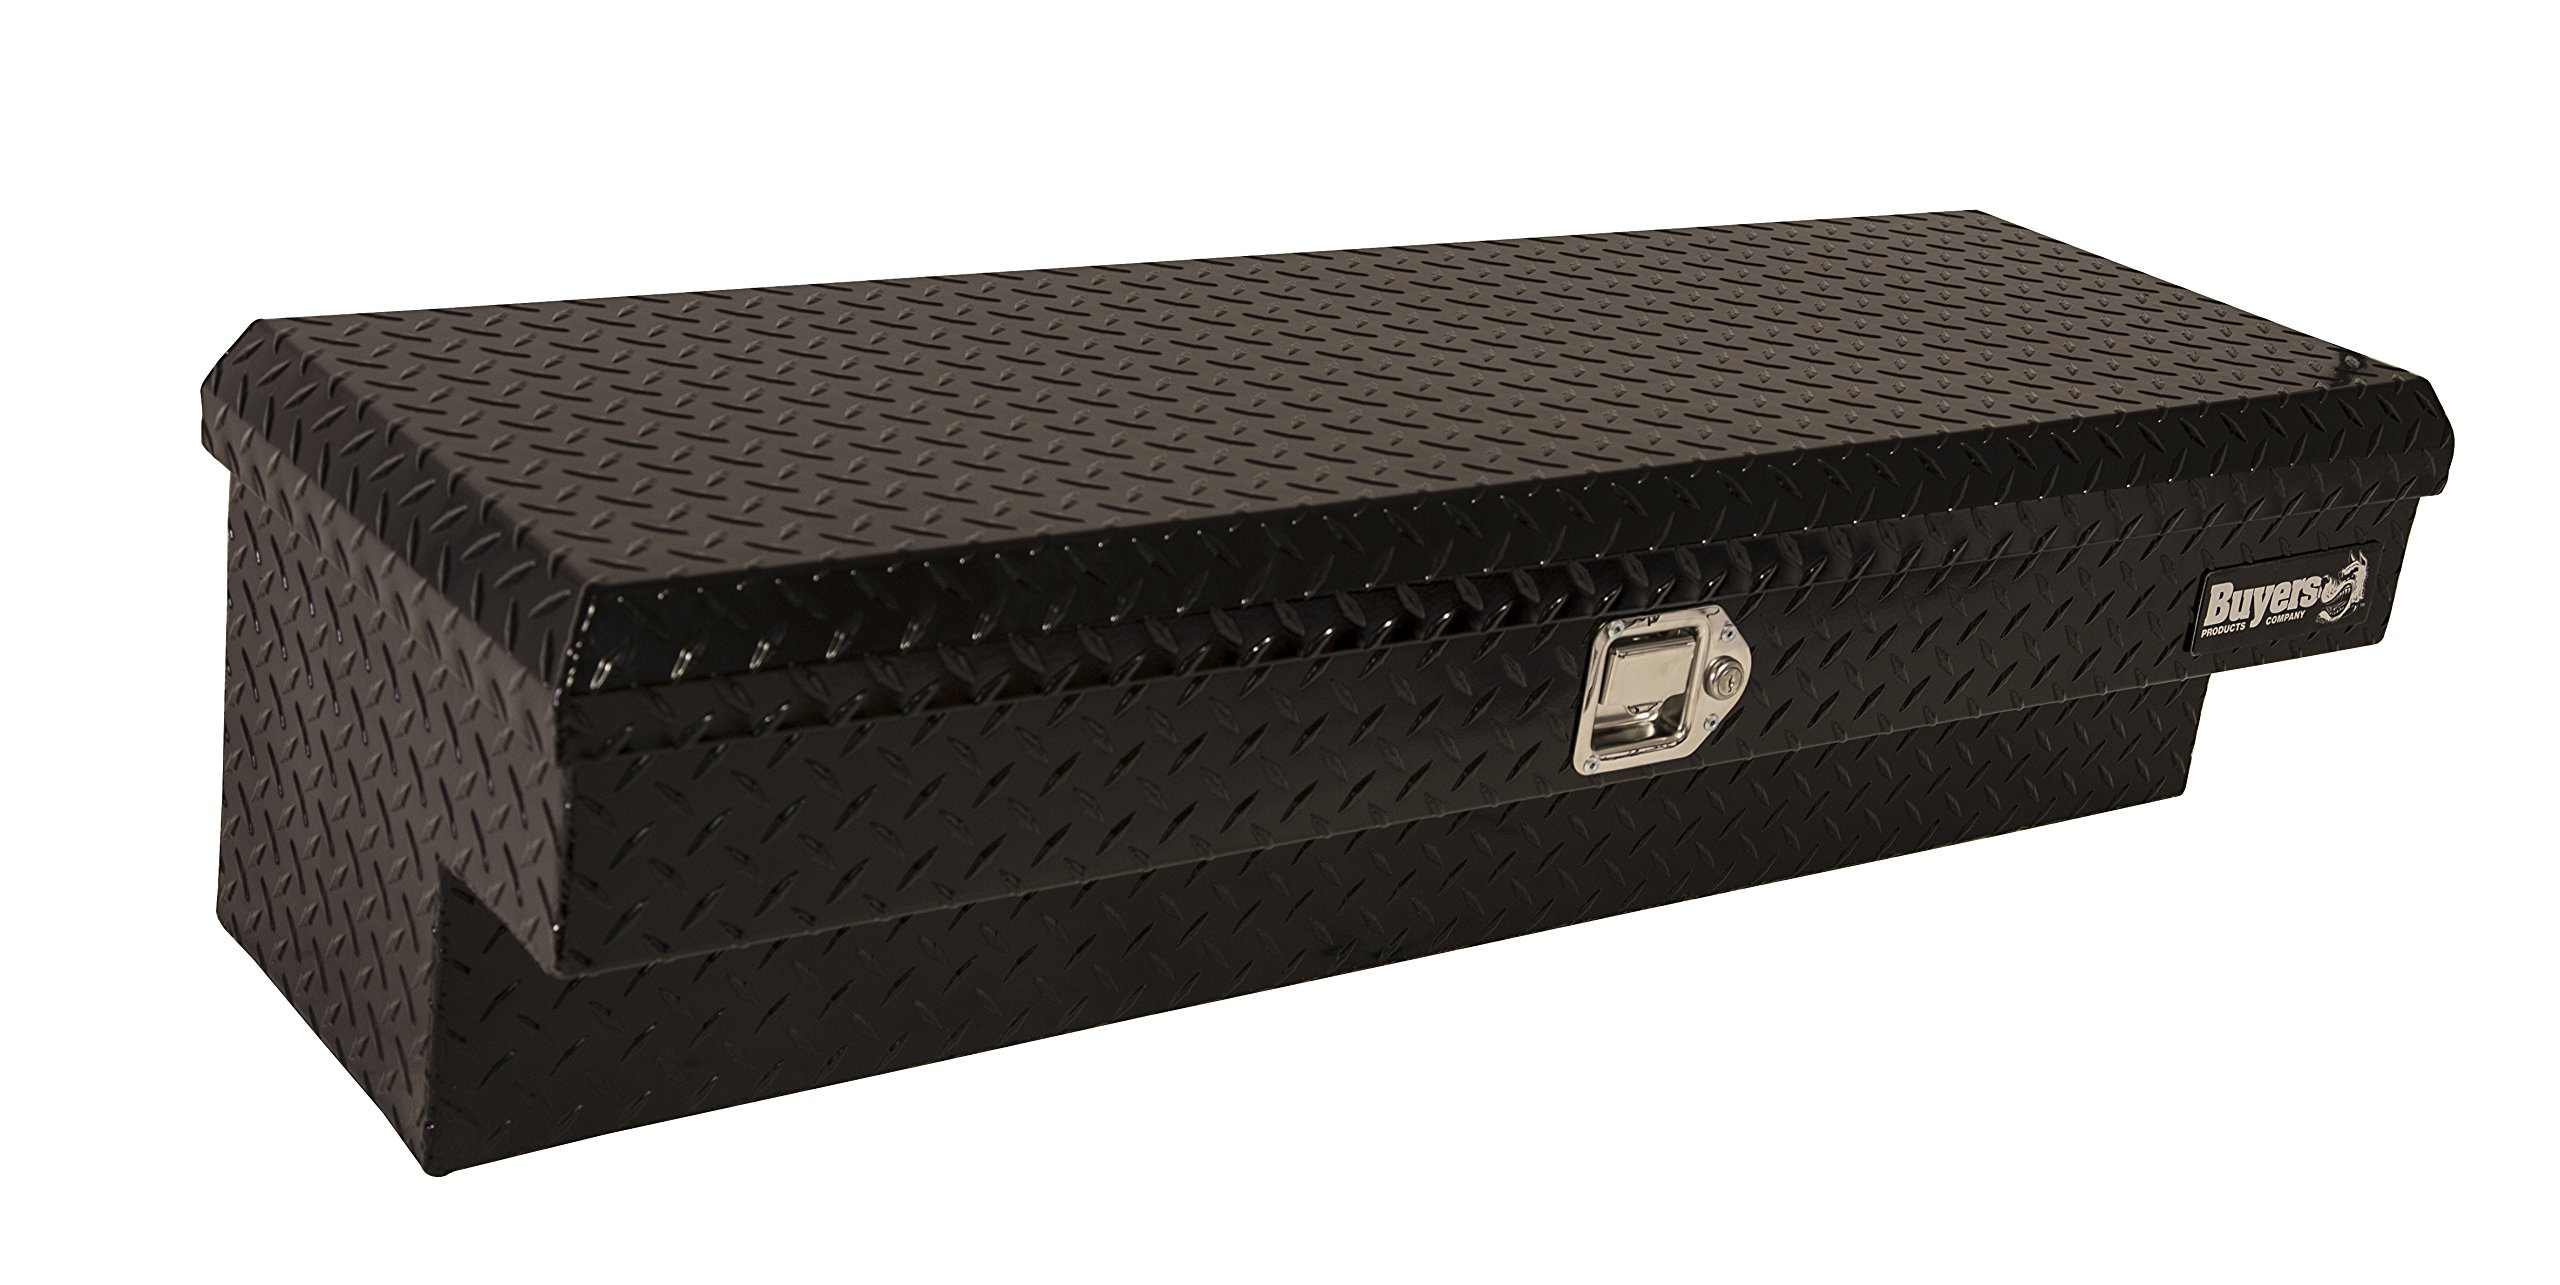 Buyers Products Black Diamond Tread Aluminum Lo-Sider Truck Box (13x16x87 Inch)